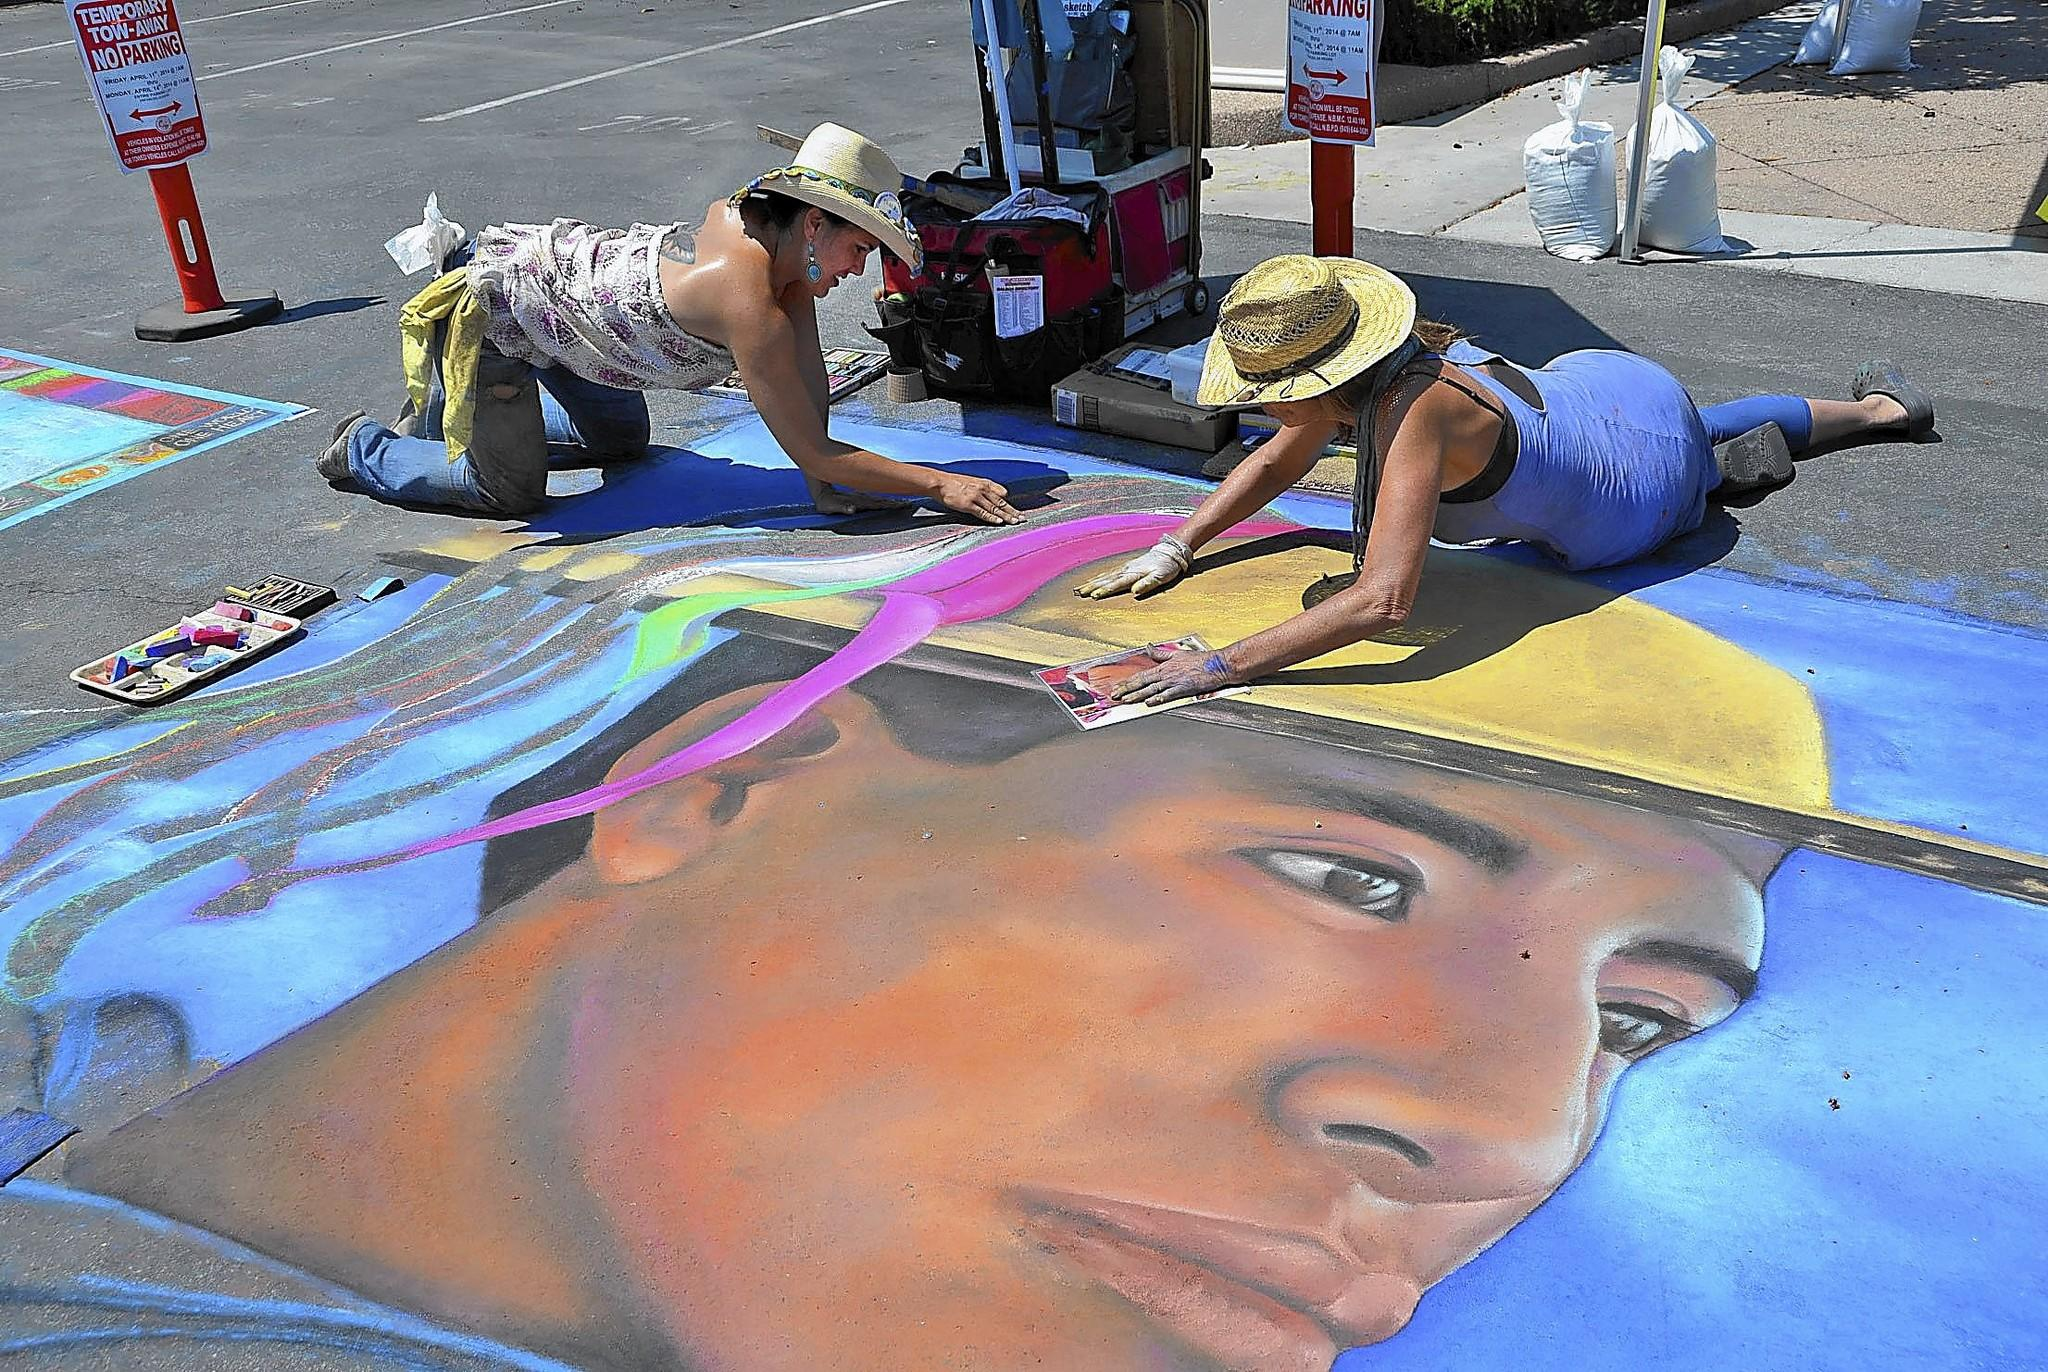 Cynthia Kostylo, left, and Raziah Roushan complete a portrait as part of the Strada Dell'Arte:Spectacular Chalk Murals during the Newport to Ensenada Race Kickoff Fiesta held Sunday in Balboa Village.